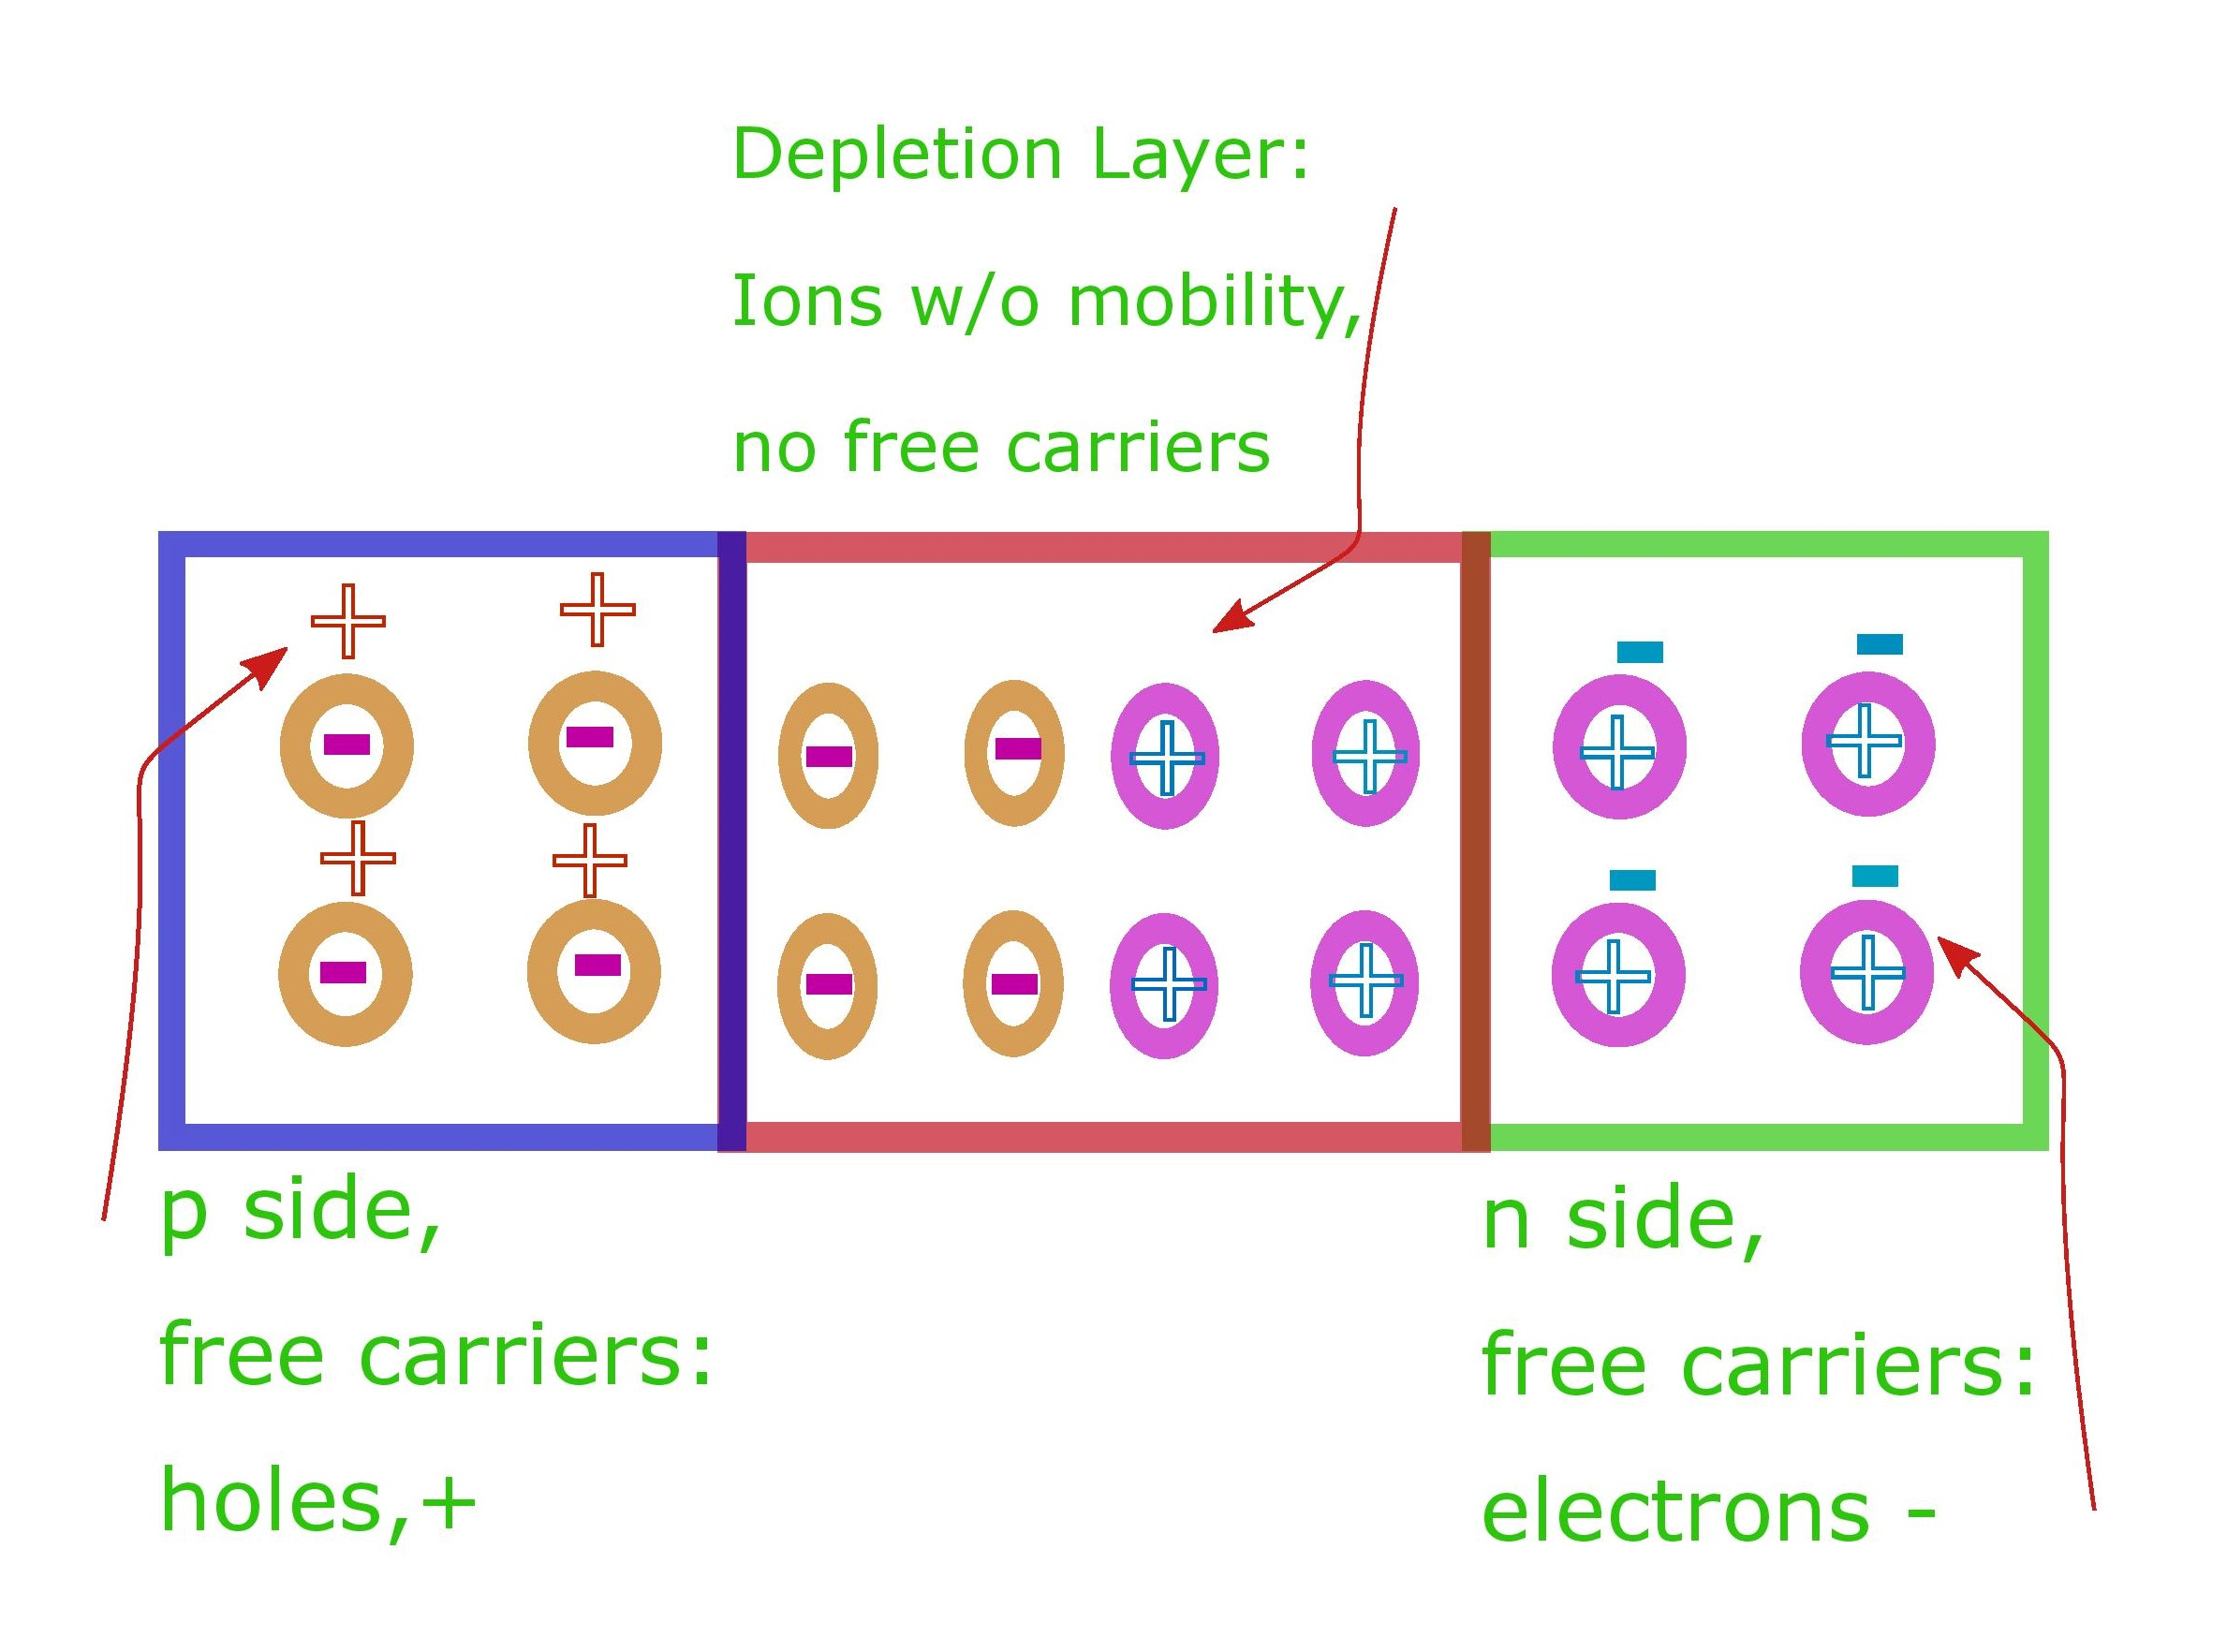 Formation of depletion layer